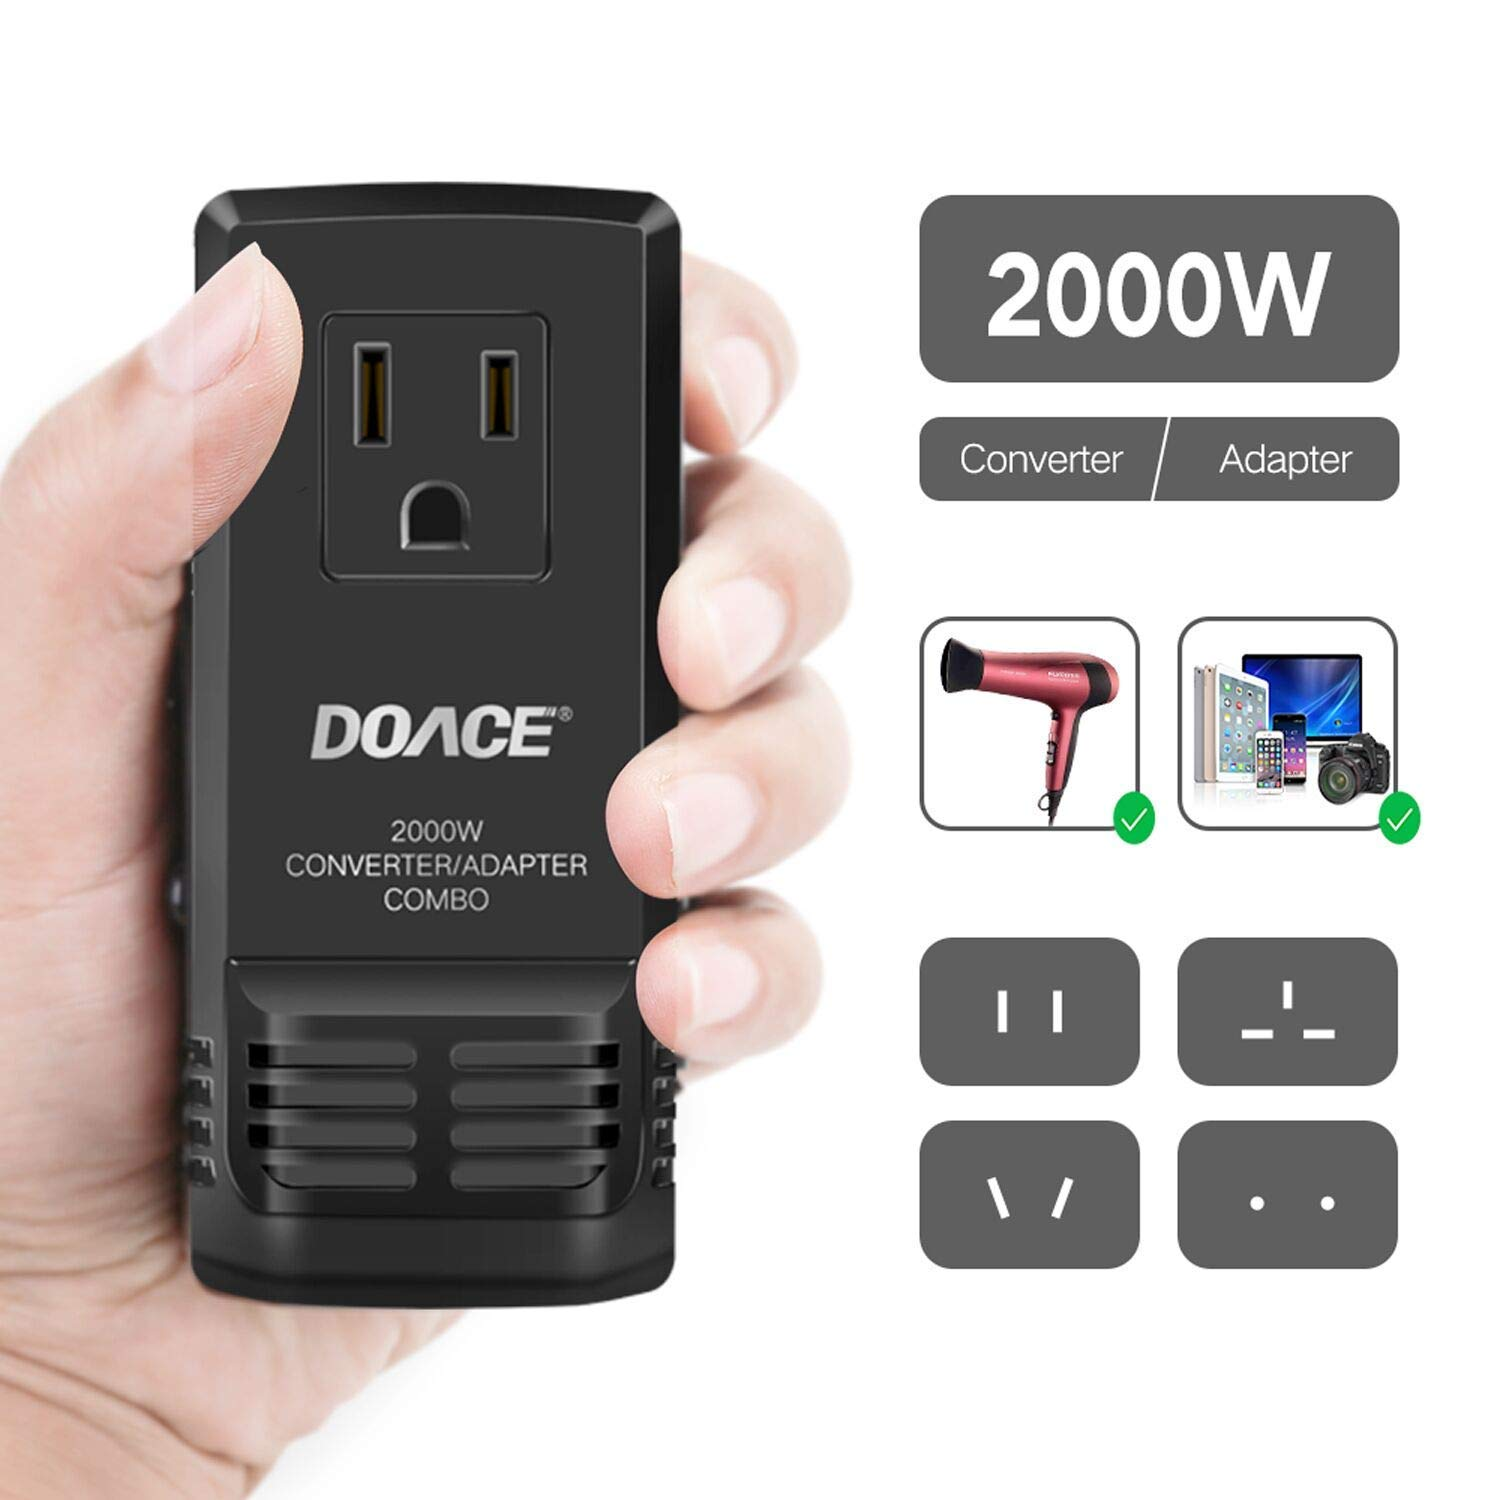 DOACE C8 2000W Travel Voltage Converter 220V to 110V for Hair Dryer Steam Iron, 8A Universal Power Adapter with All in One UK/AU/US/EU Worldwide Plug Wall Charger for Laptop MacBook Camera Cell Phone by DOACE